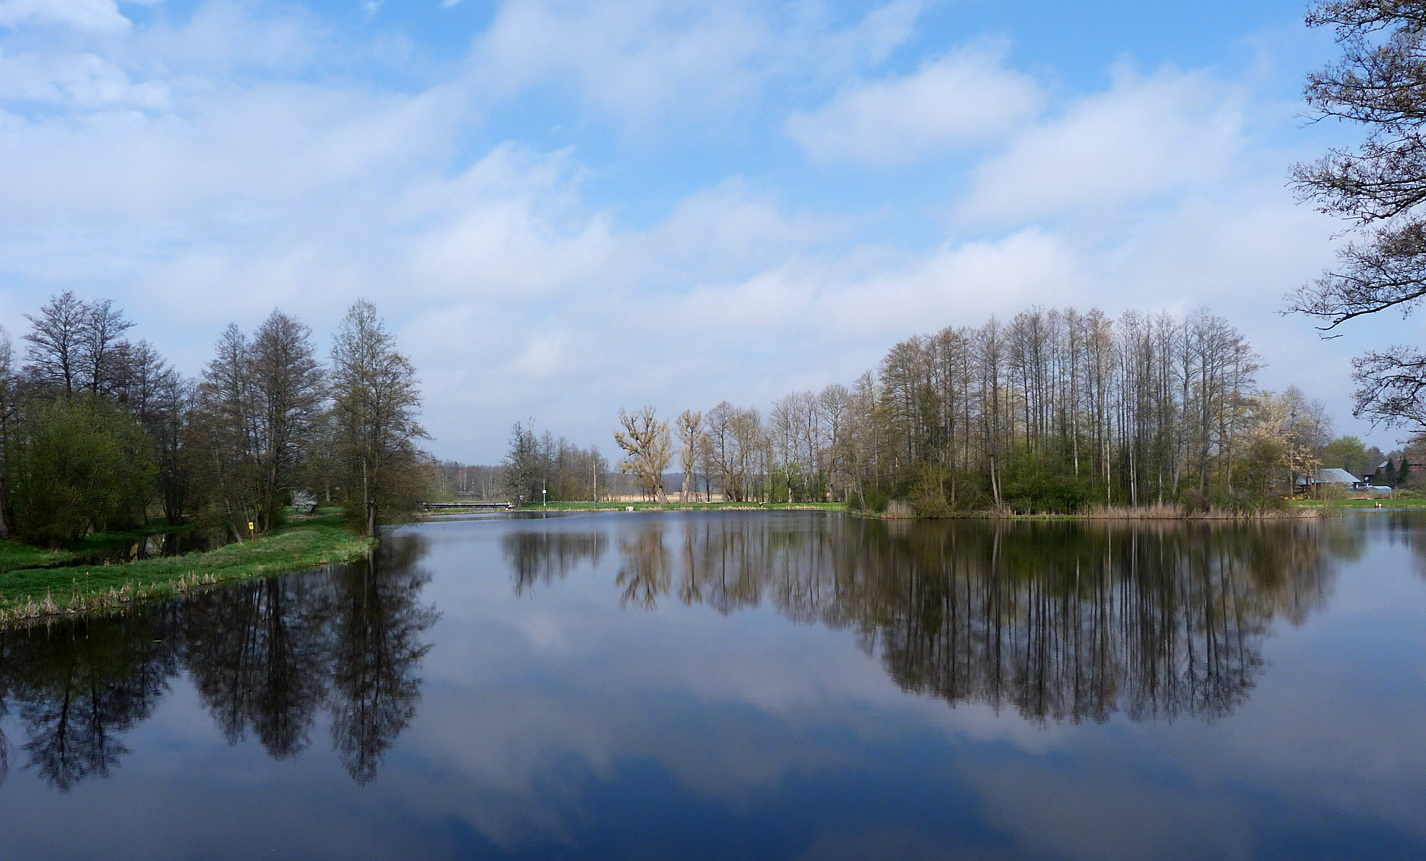 In contrast to our gloomy first visit to Bialowieza Town Park, our second visit was bathed in bright sunshine.